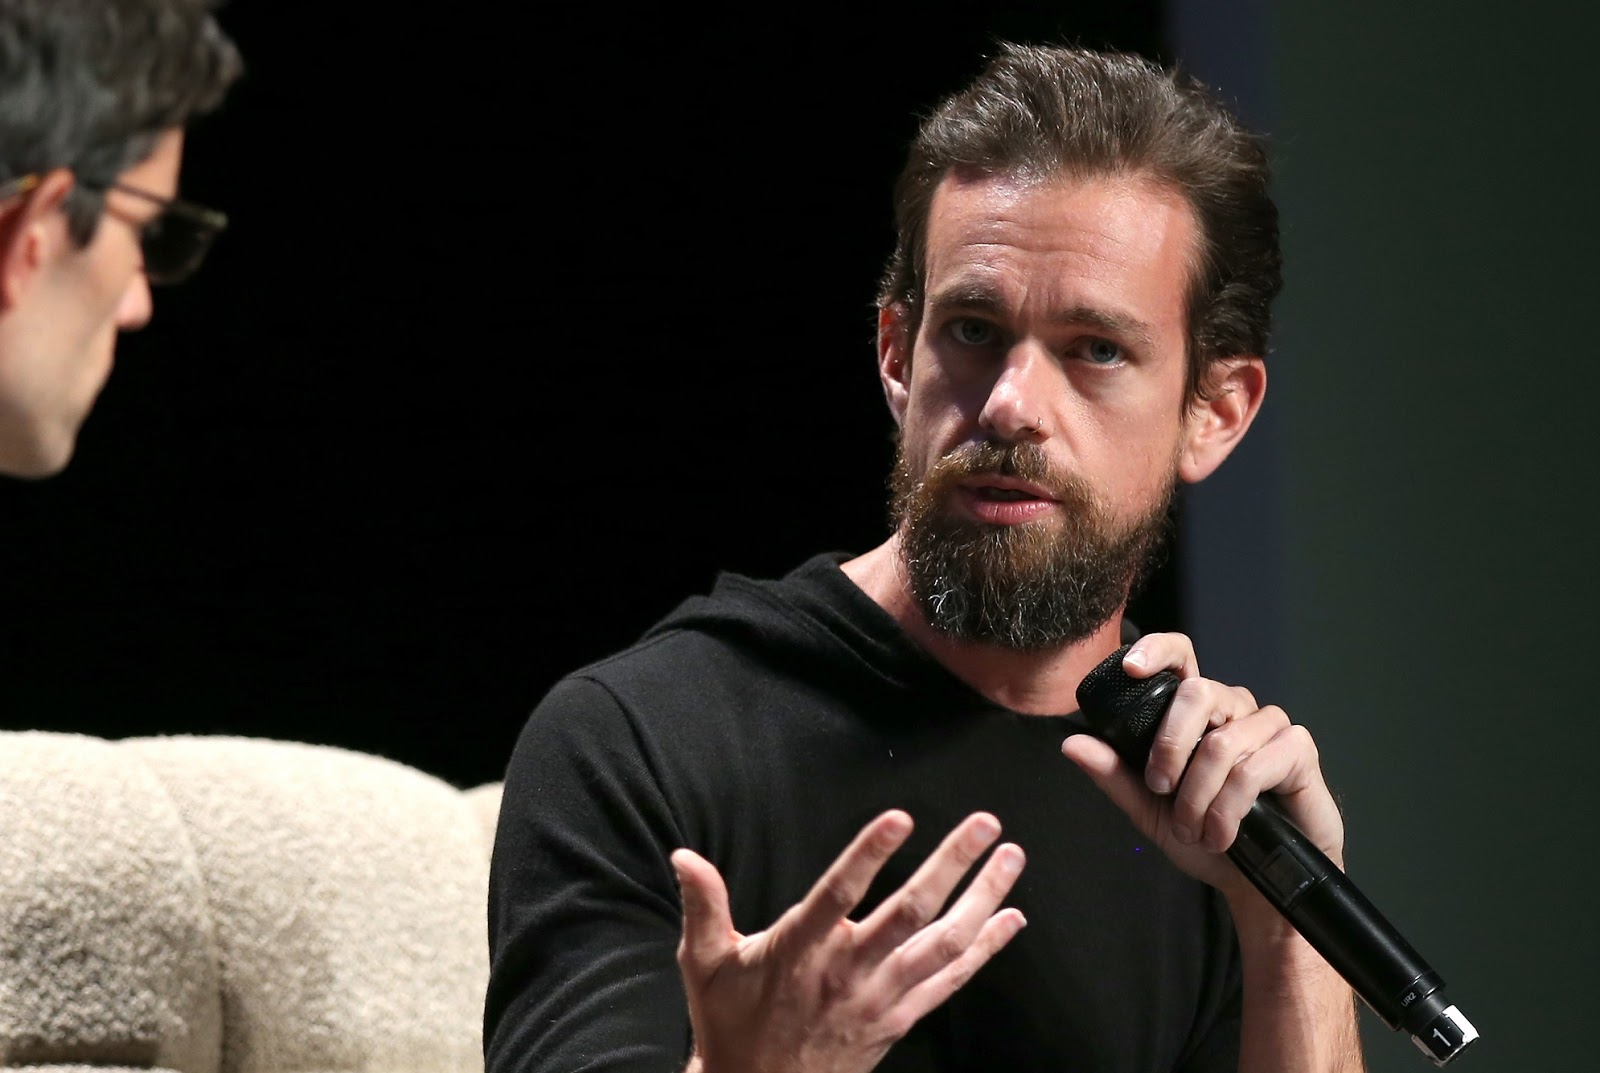 Instagram S Acquisition By Facebook Made Twitter Ceo Jack Dorsey So Upset That He Deleted The App And Never Used It Again Digital Information World Jessie in wonderland (au) yep i made a au for brawl stars (again :d) it's my favorite… twitter ceo jack dorsey